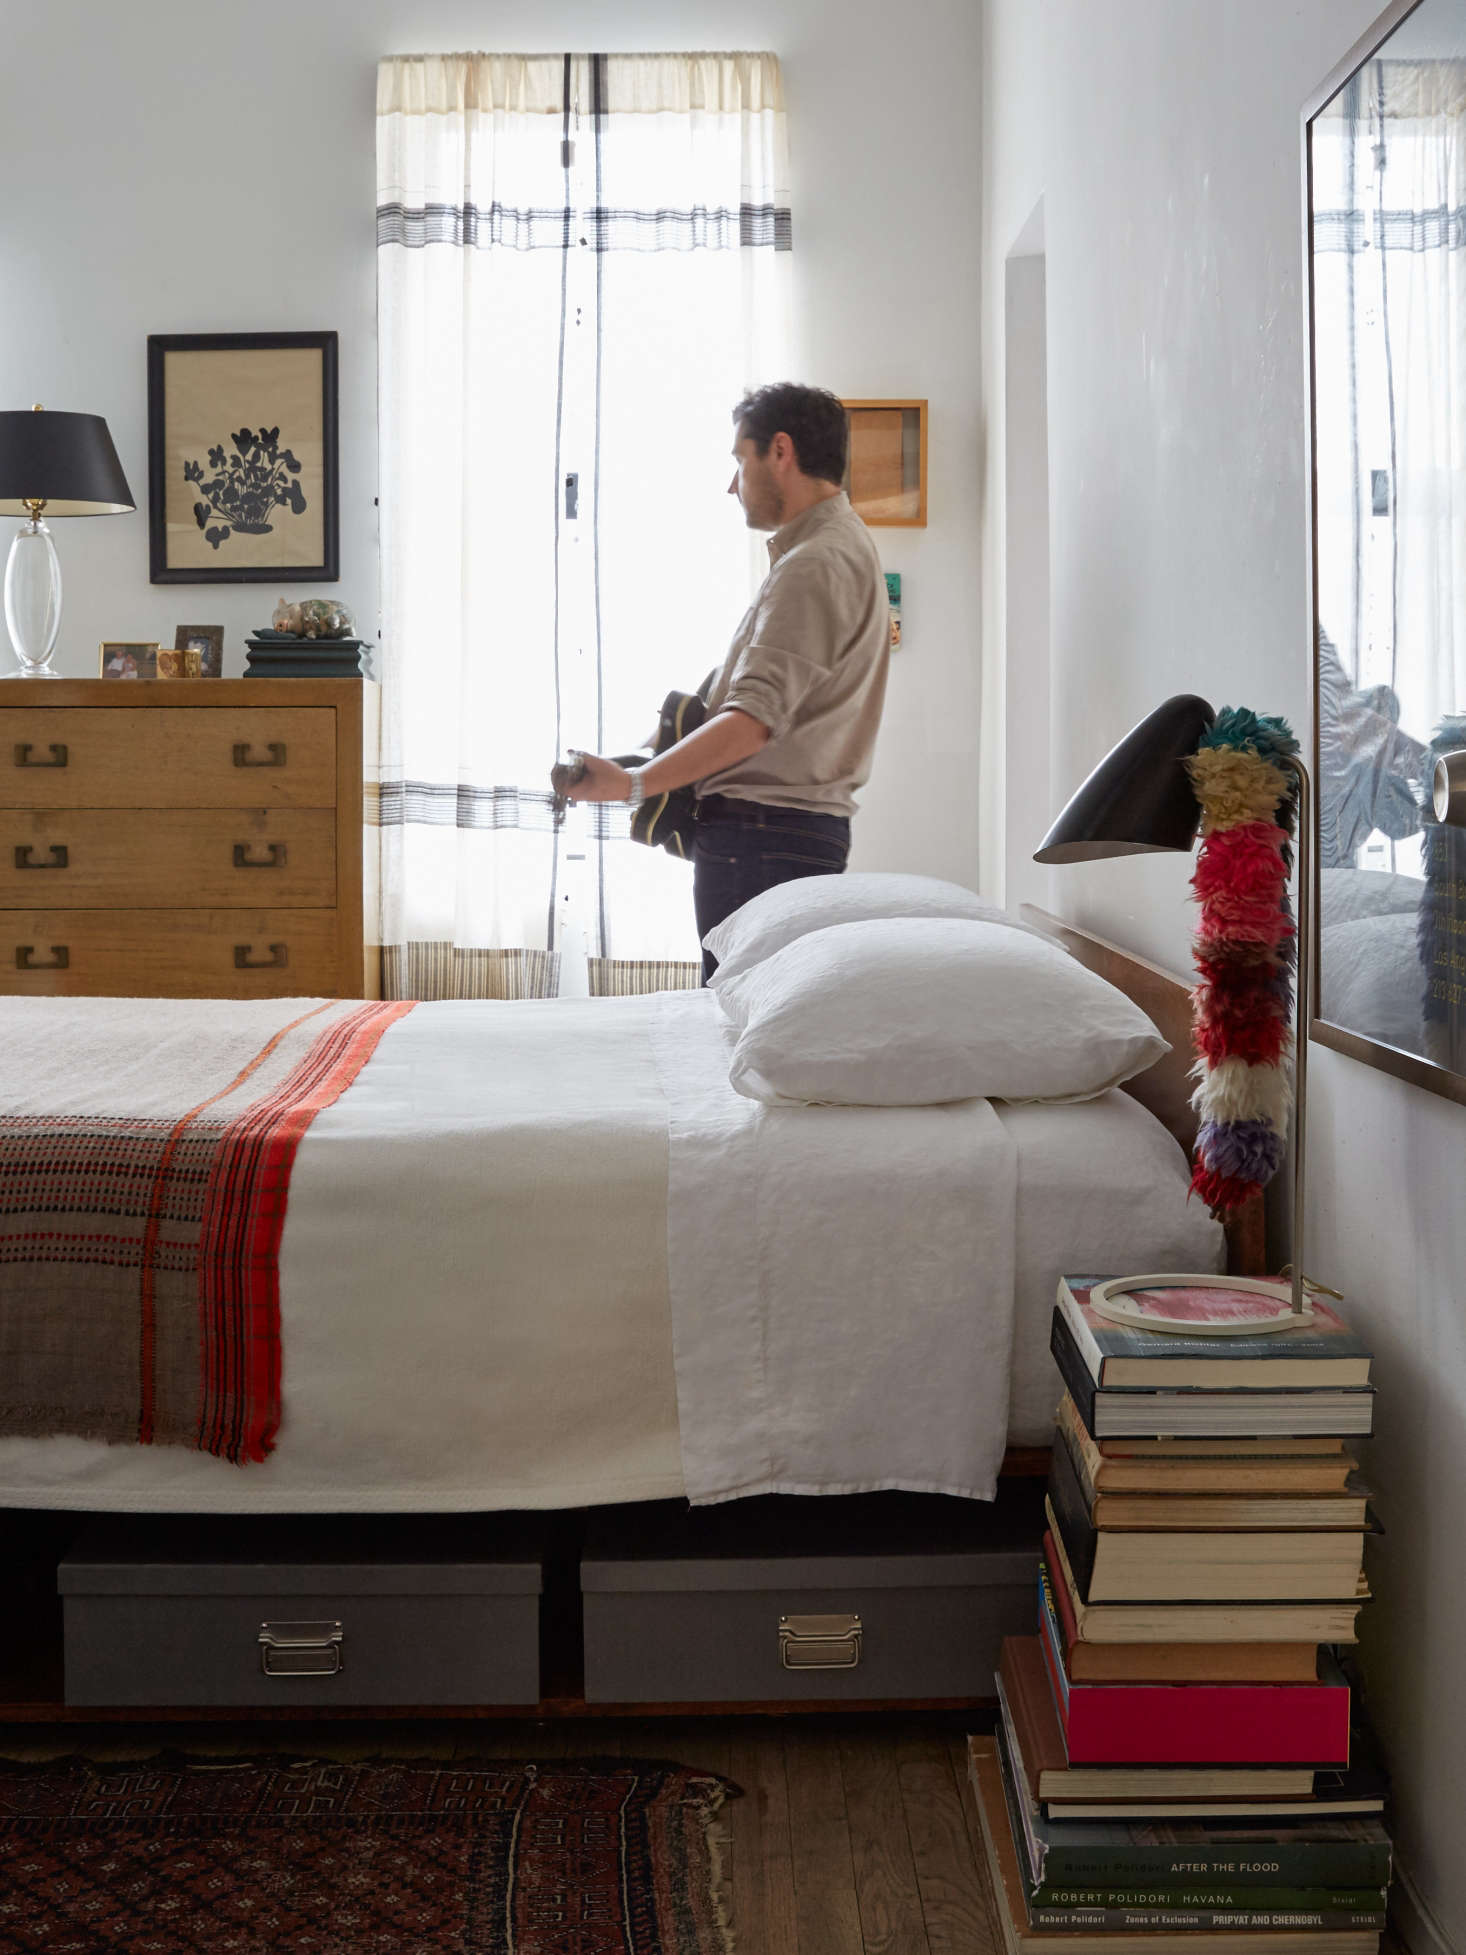 Small-space solutions: under-the-bed storage